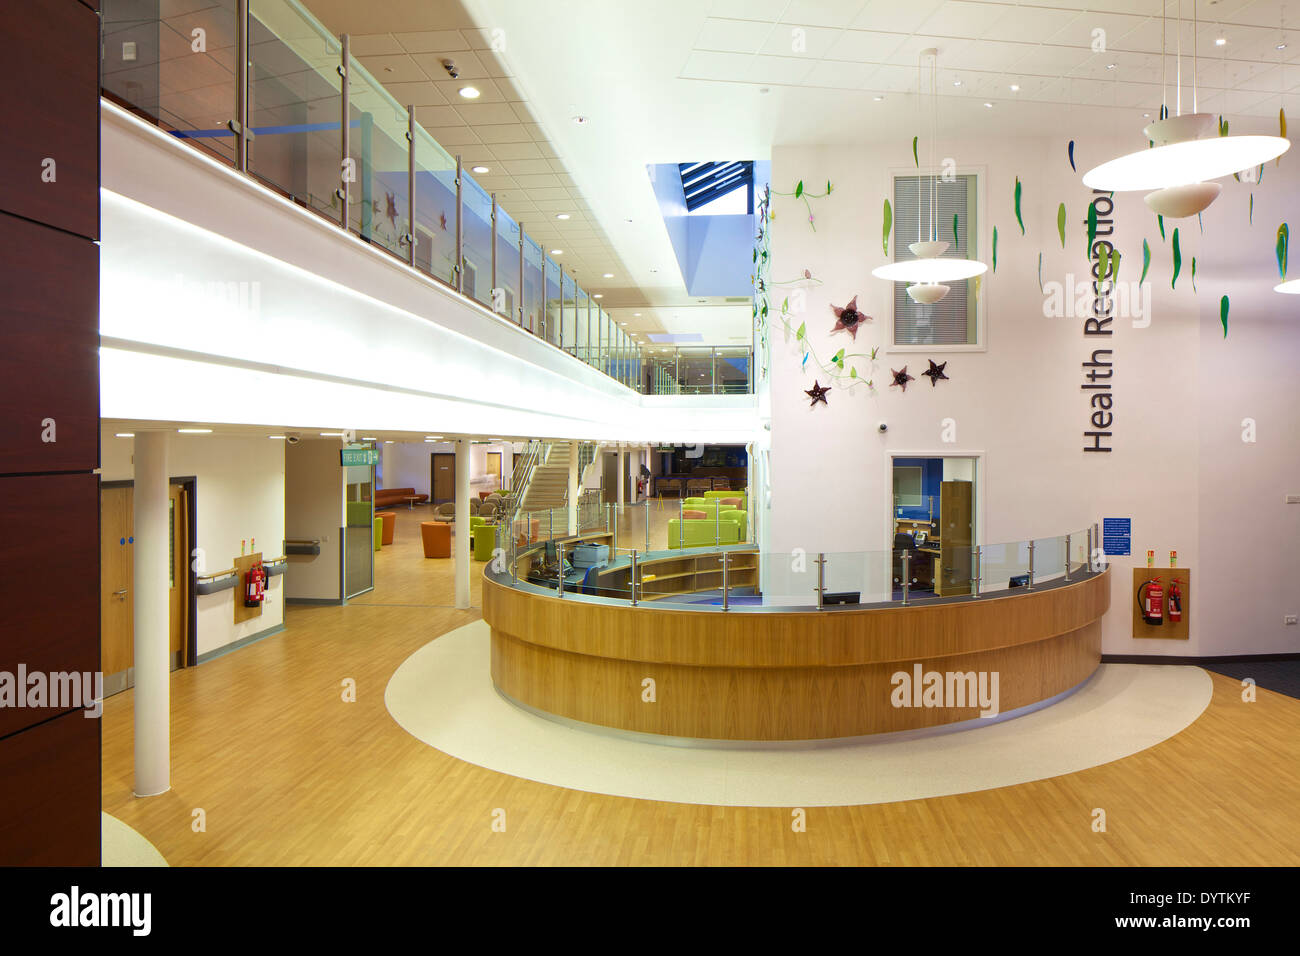 Reception area of Houghton Primary Care Centre, Houghton-le-Spring - Stock Image